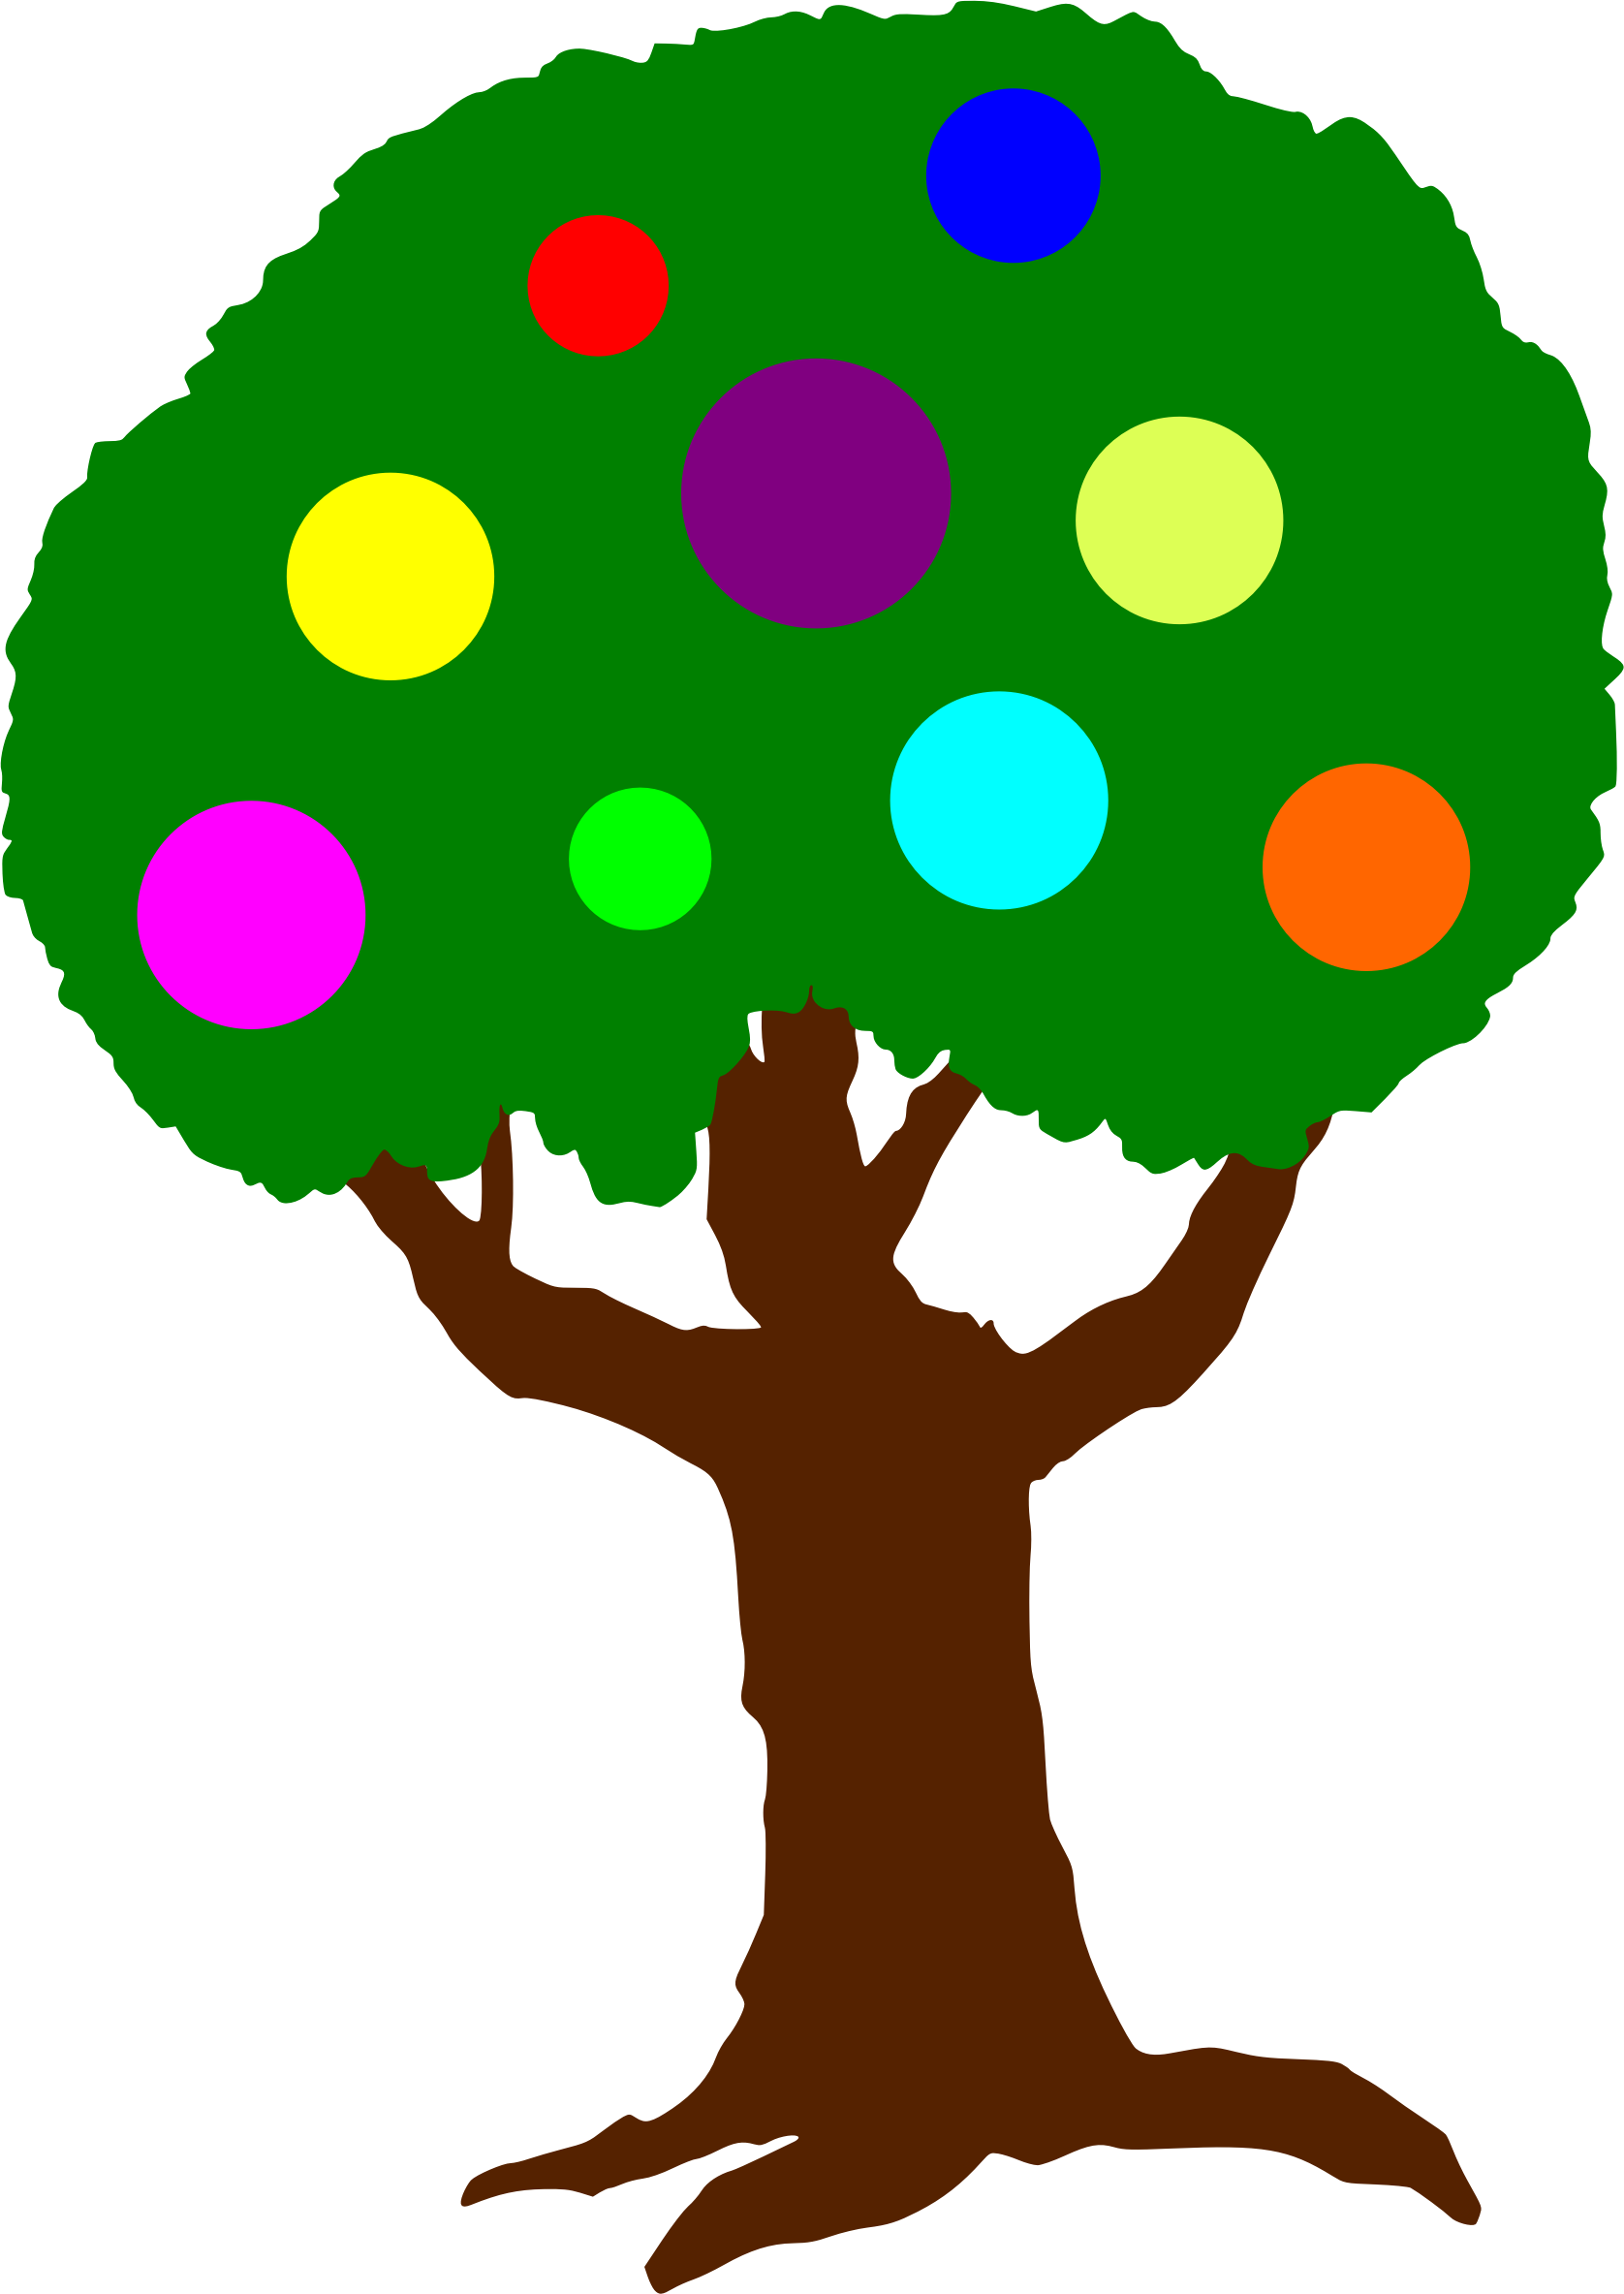 Clipart of apple trees clipart freeuse library Clipart - Fruit of the Spirit Tree clipart freeuse library